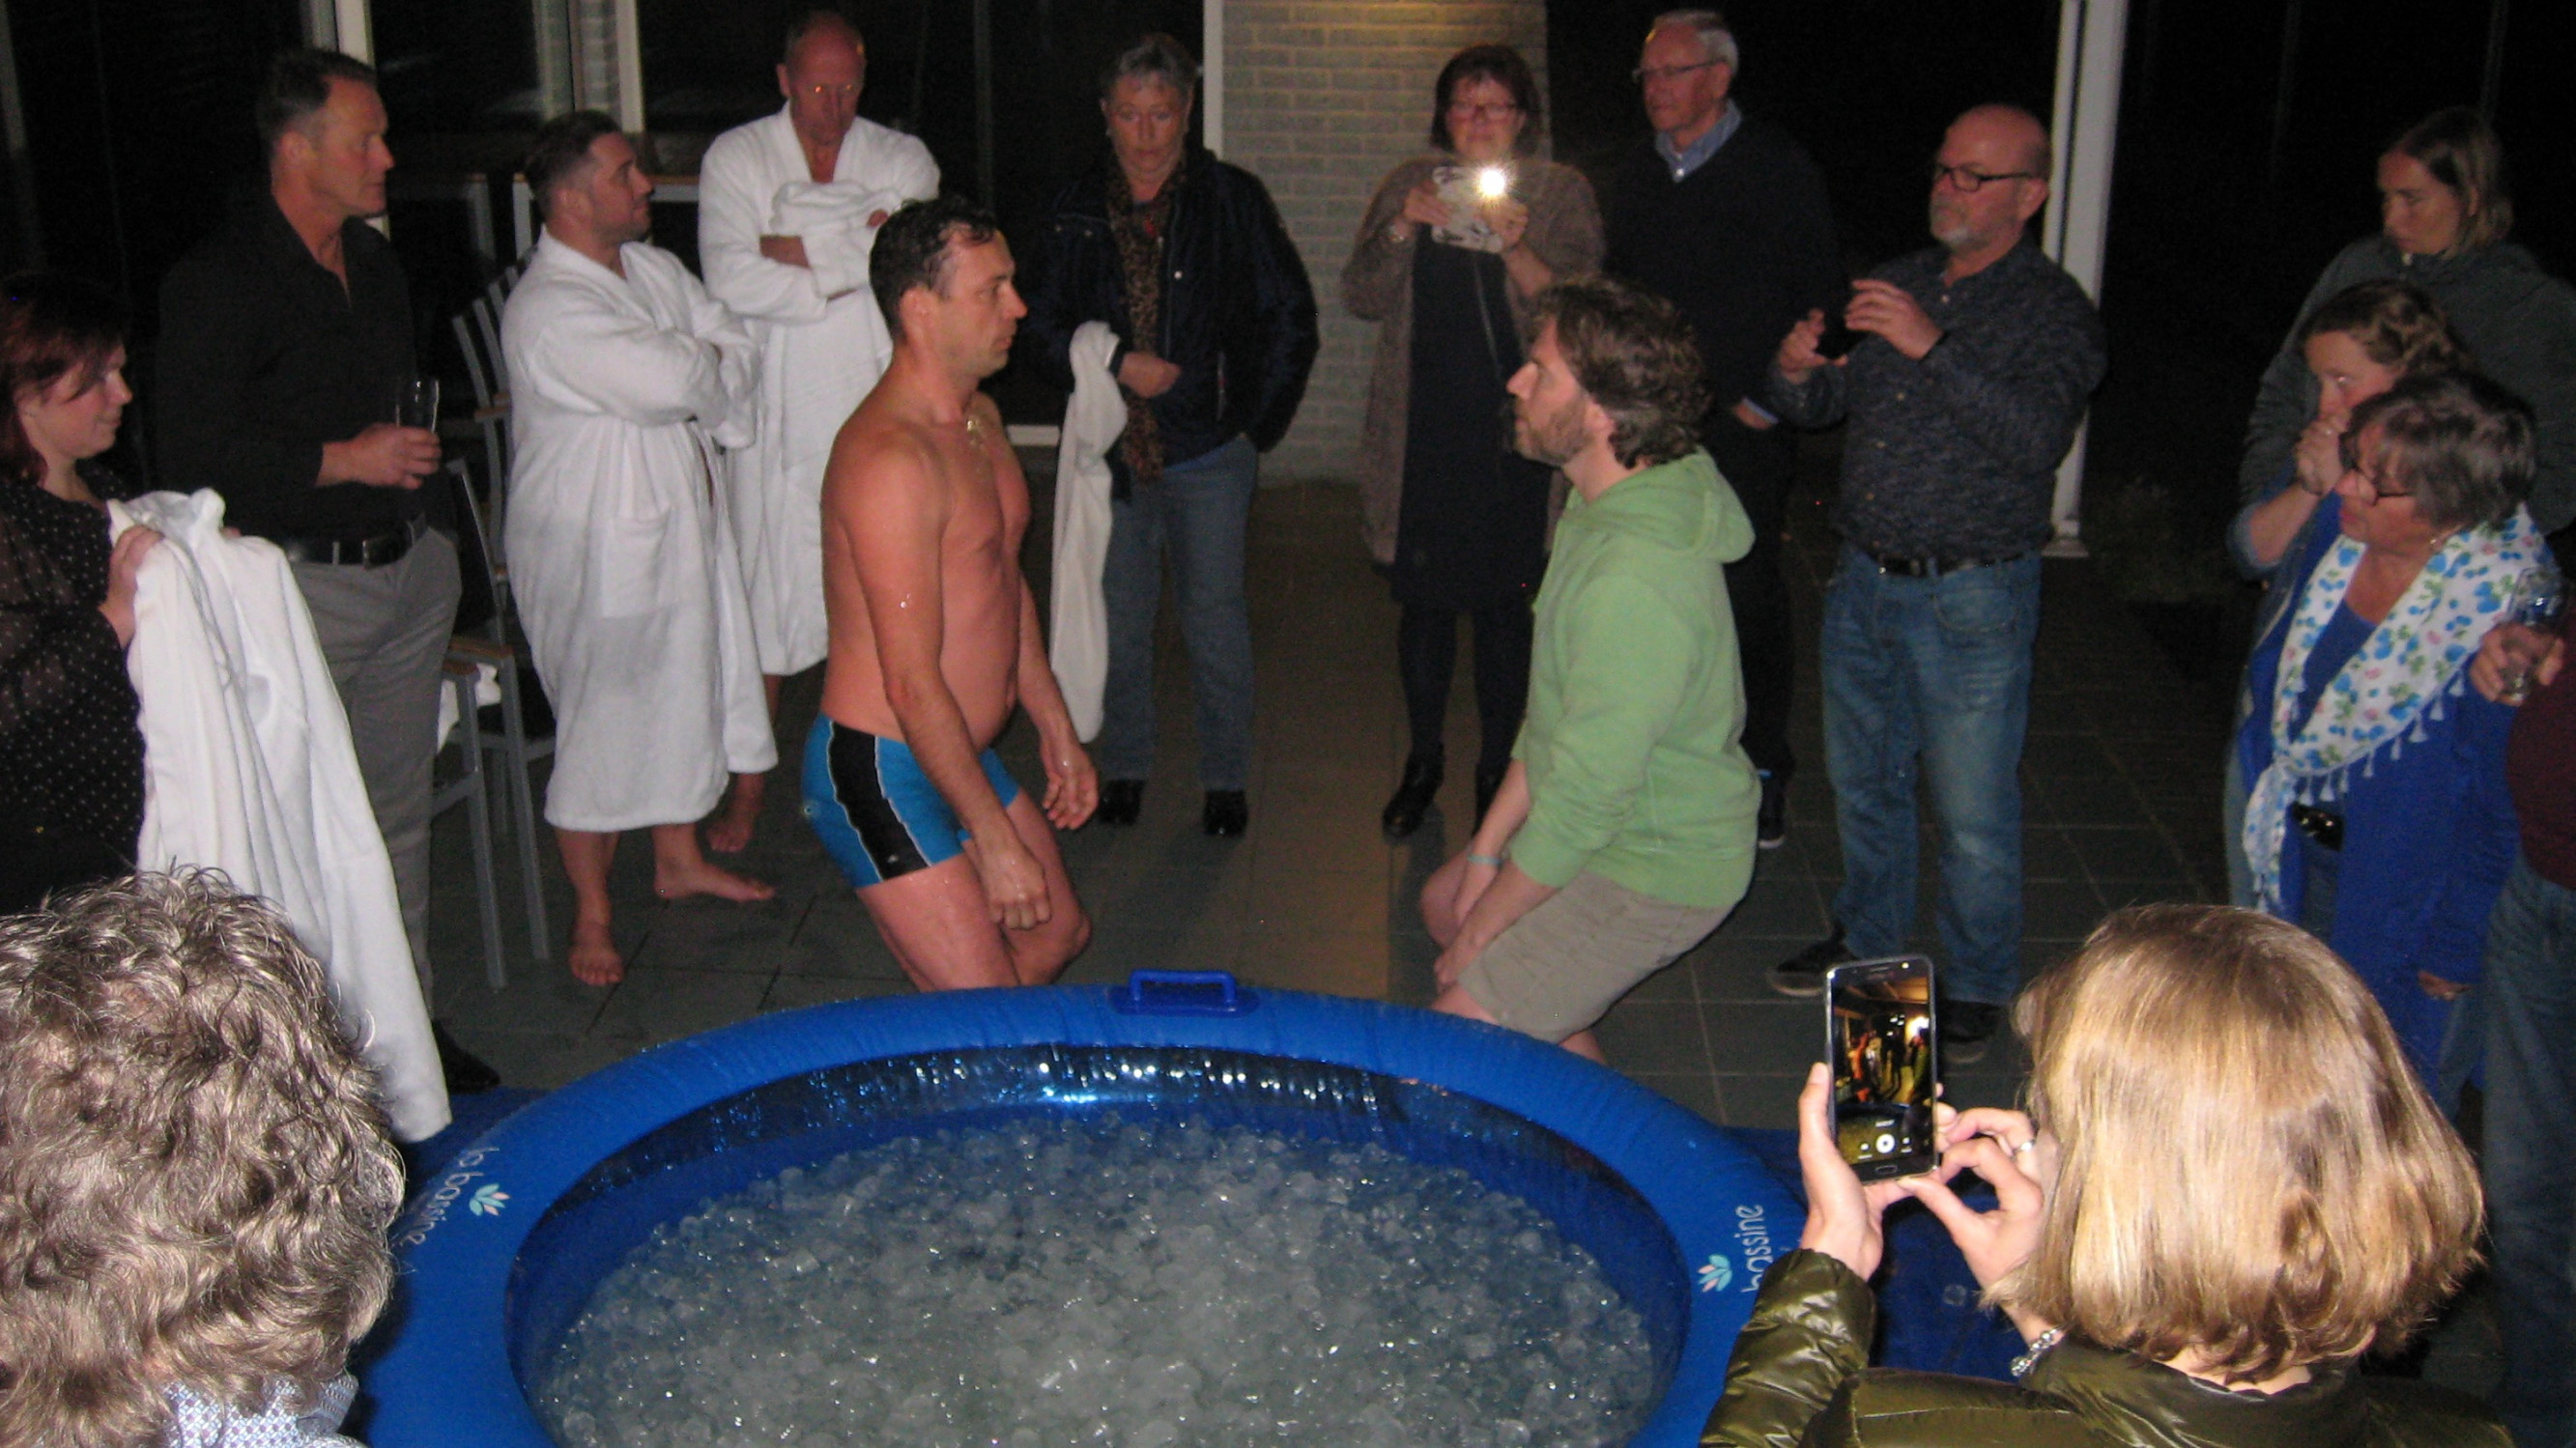 Image 6 of 15 - Experience the Wim Hof Method to get an impression of  at